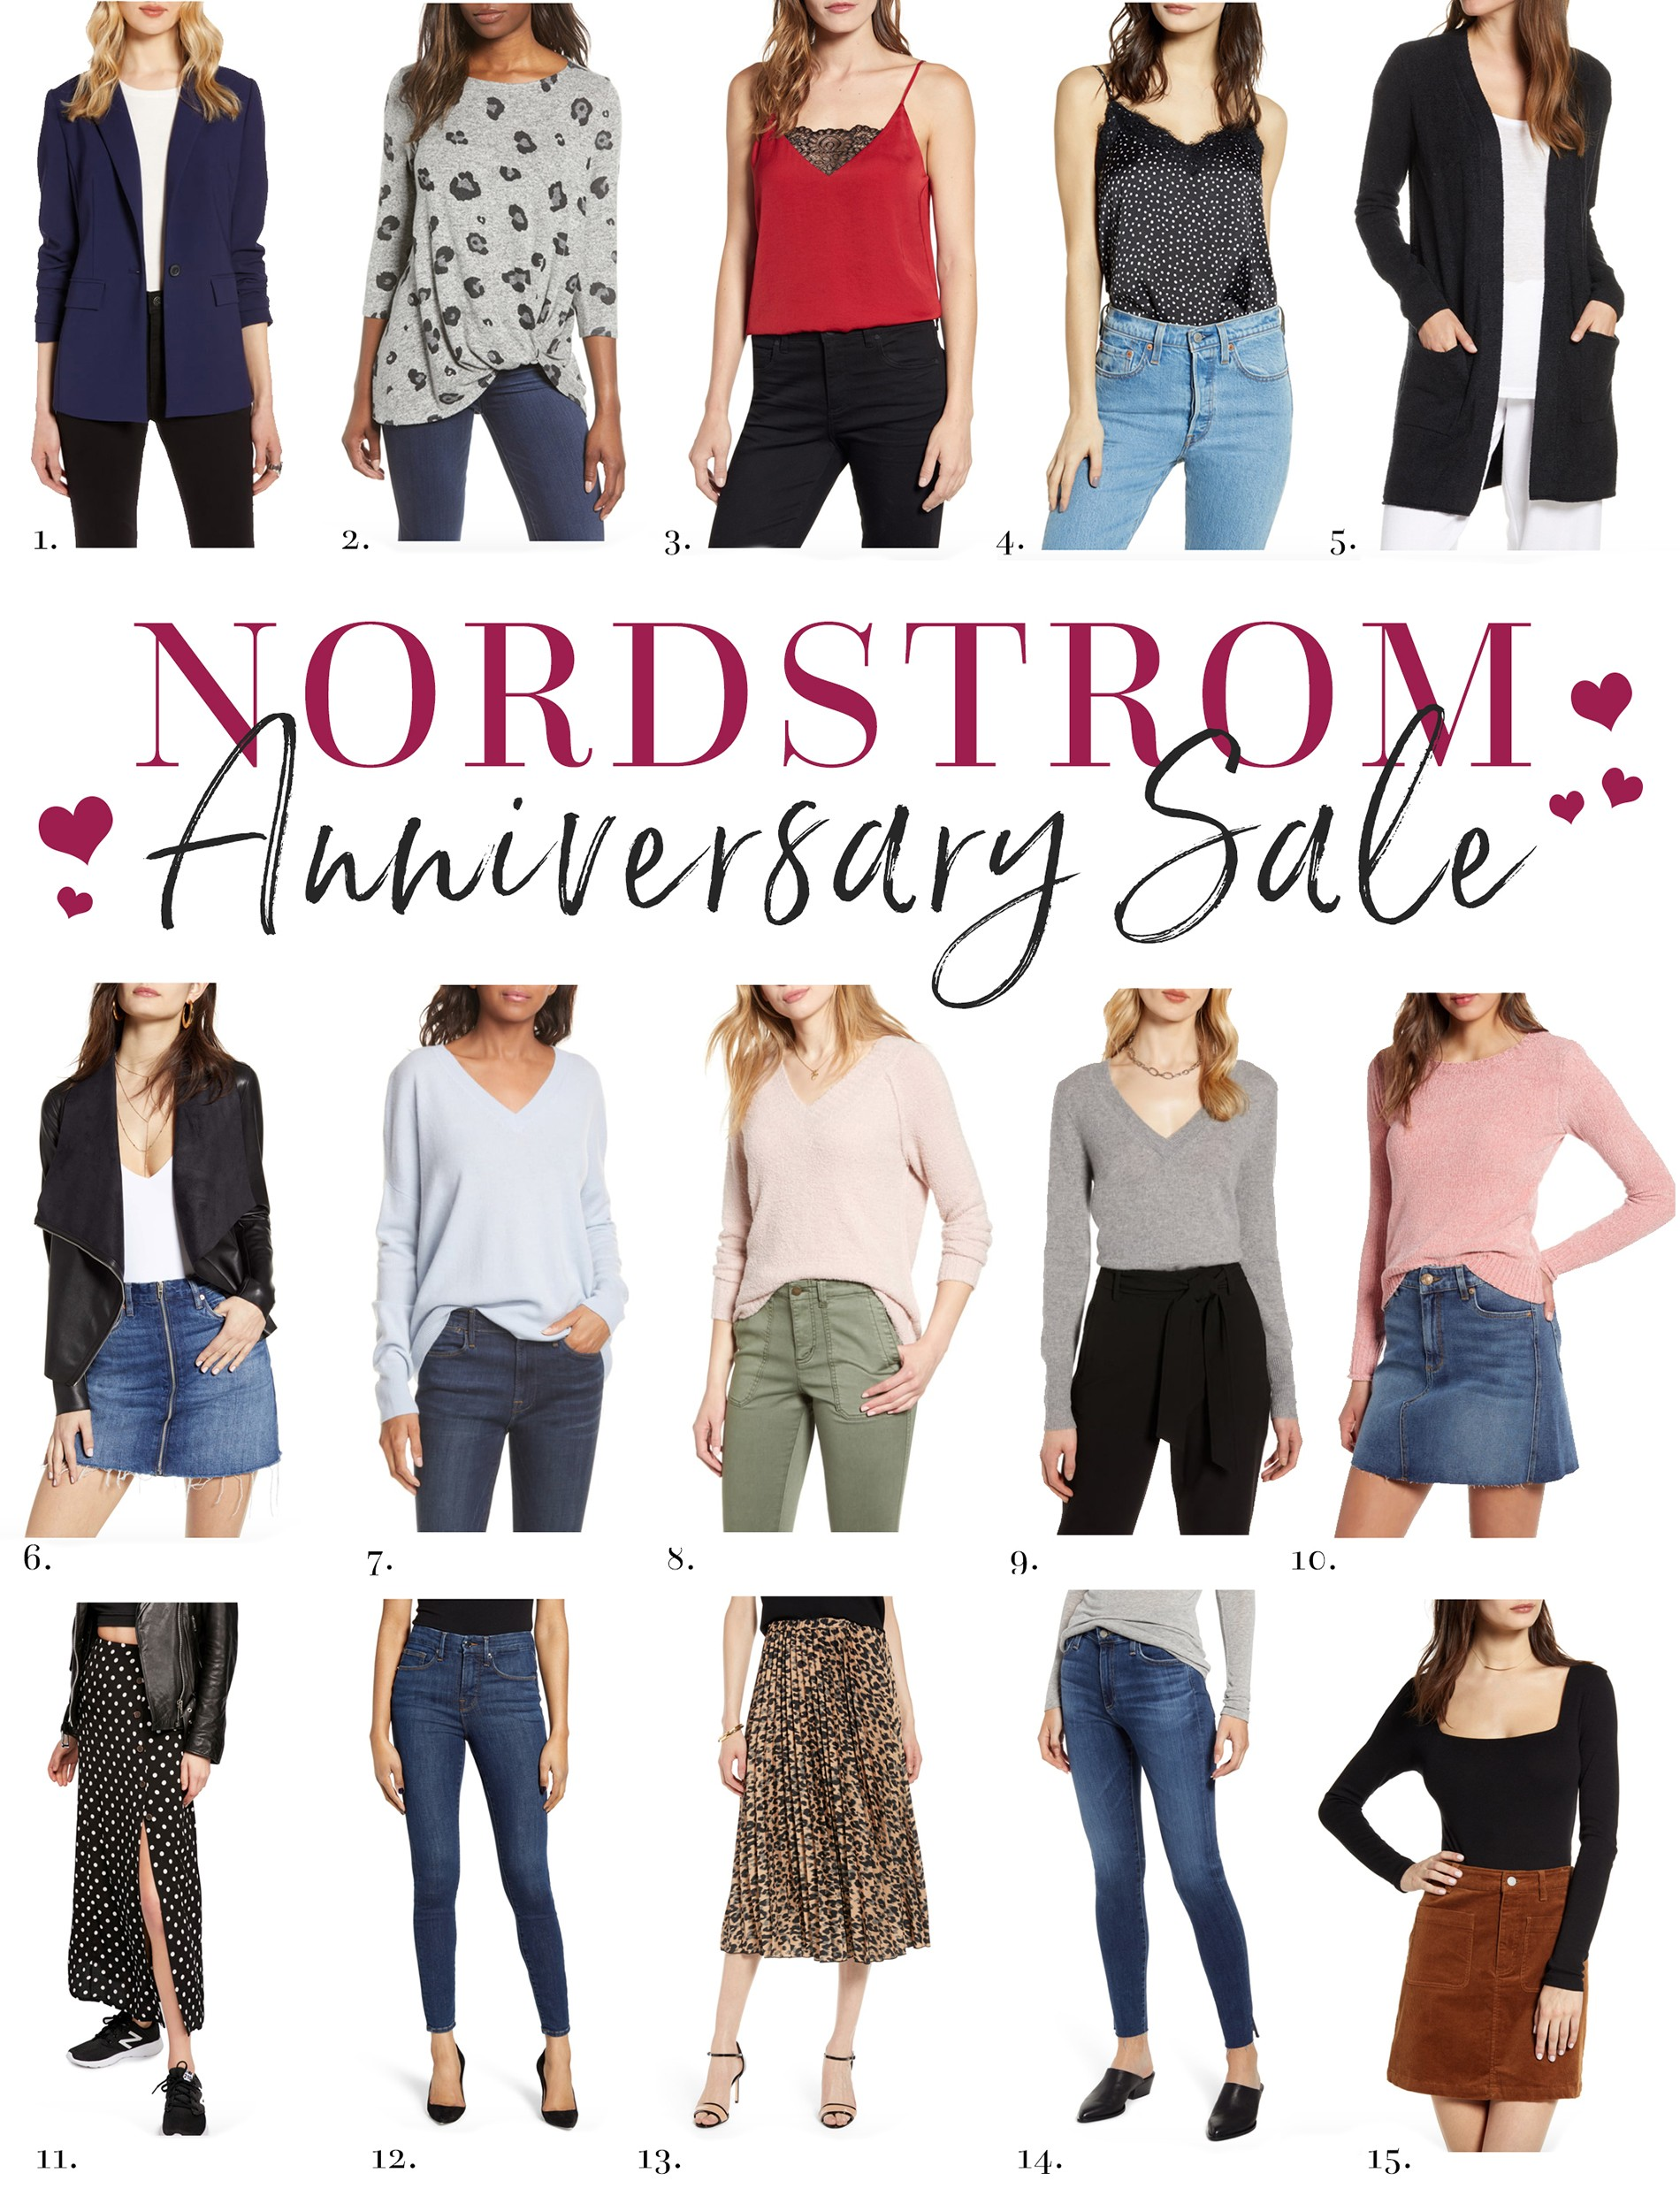 a27855f1370 Nordstrom Anniversary Sale Picks & Giveaway!! - Chase Amie